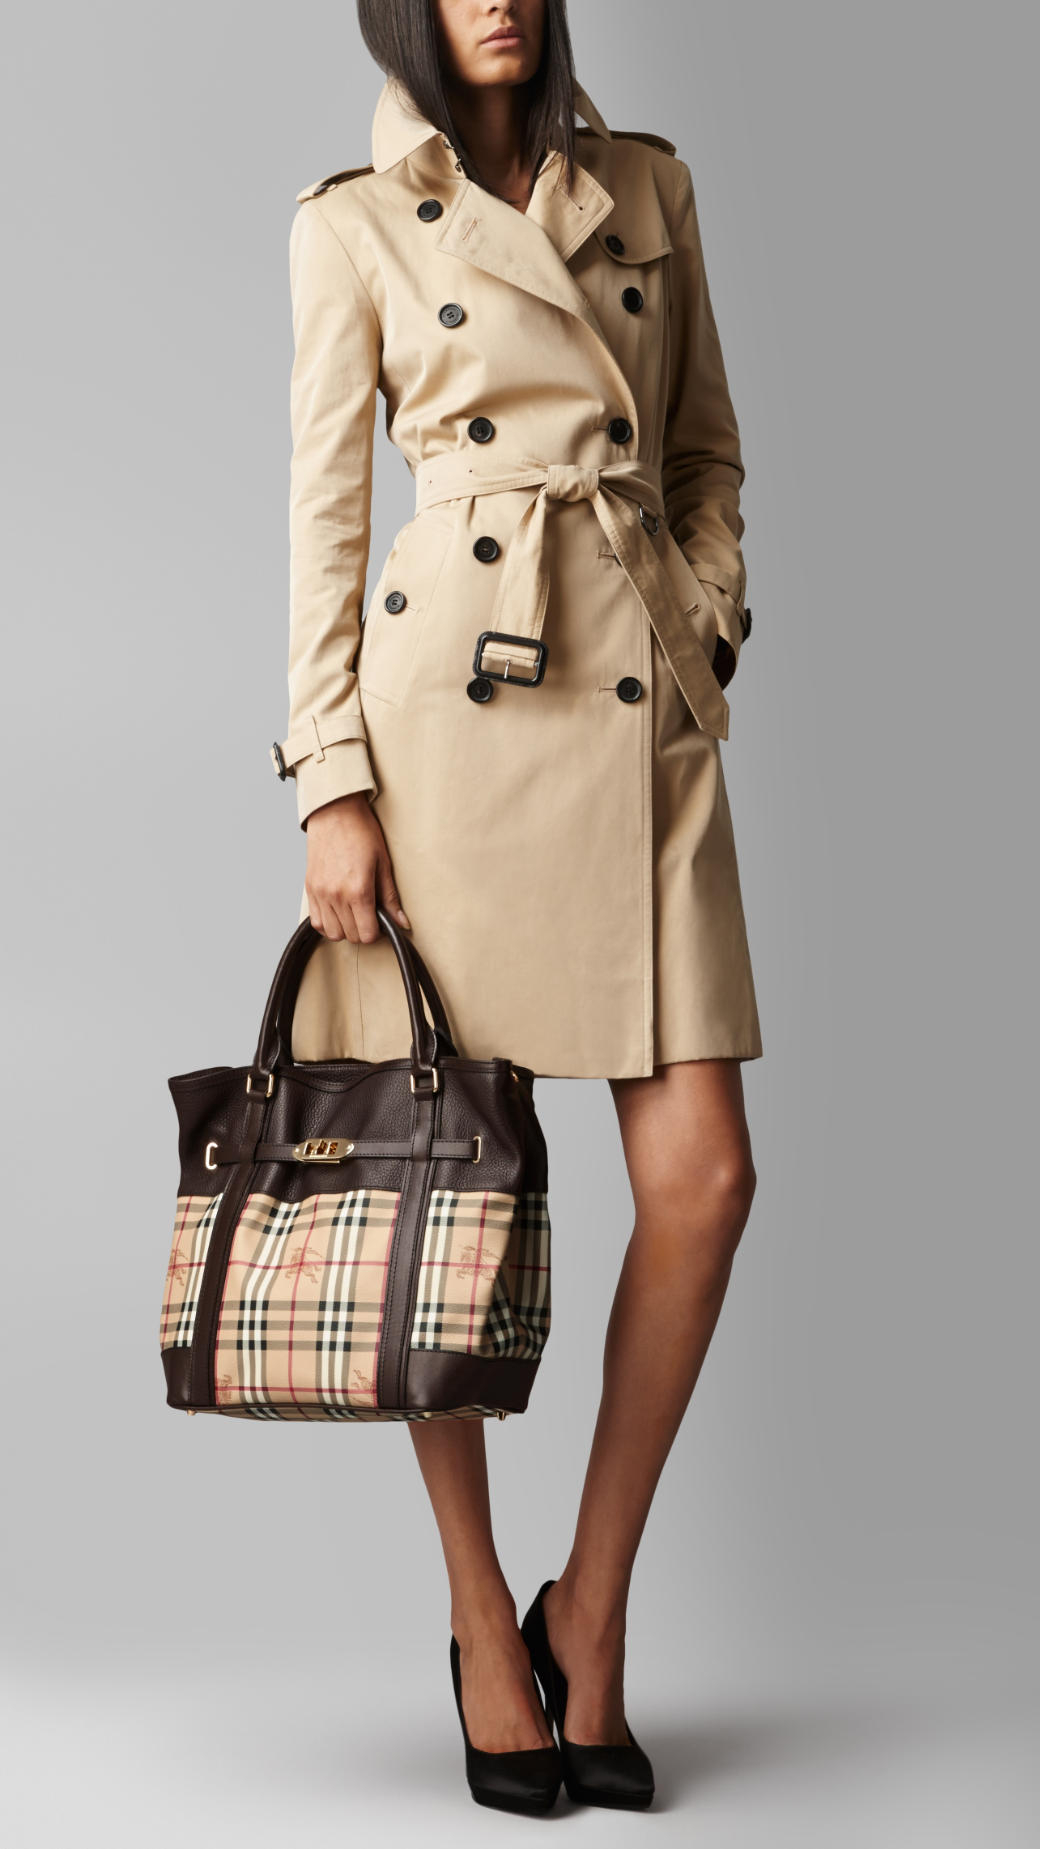 e3d17f0d9d78 Lyst - Burberry Medium Leather Haymarket Check Tote Bag in Brown